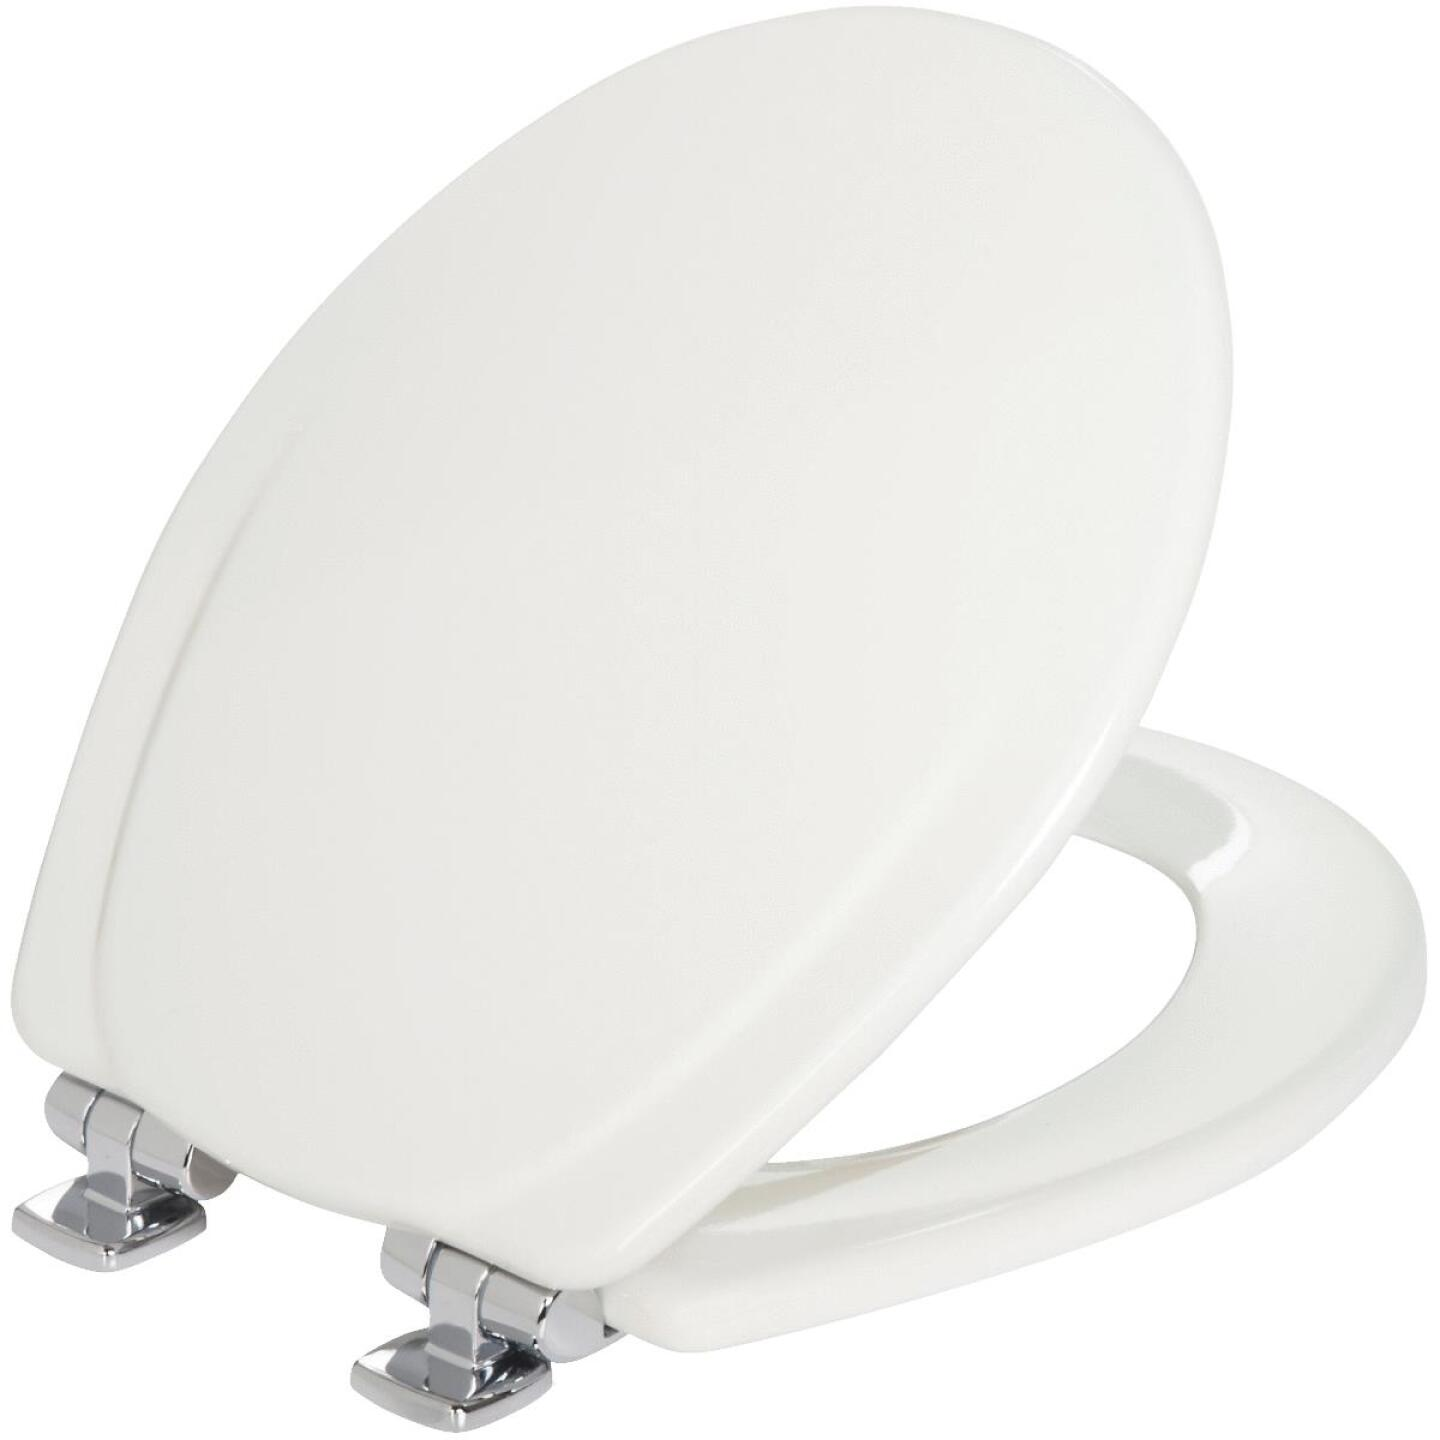 Mayfair Sta-Tite Round Slow Close White Wood Toilet Seat Image 1